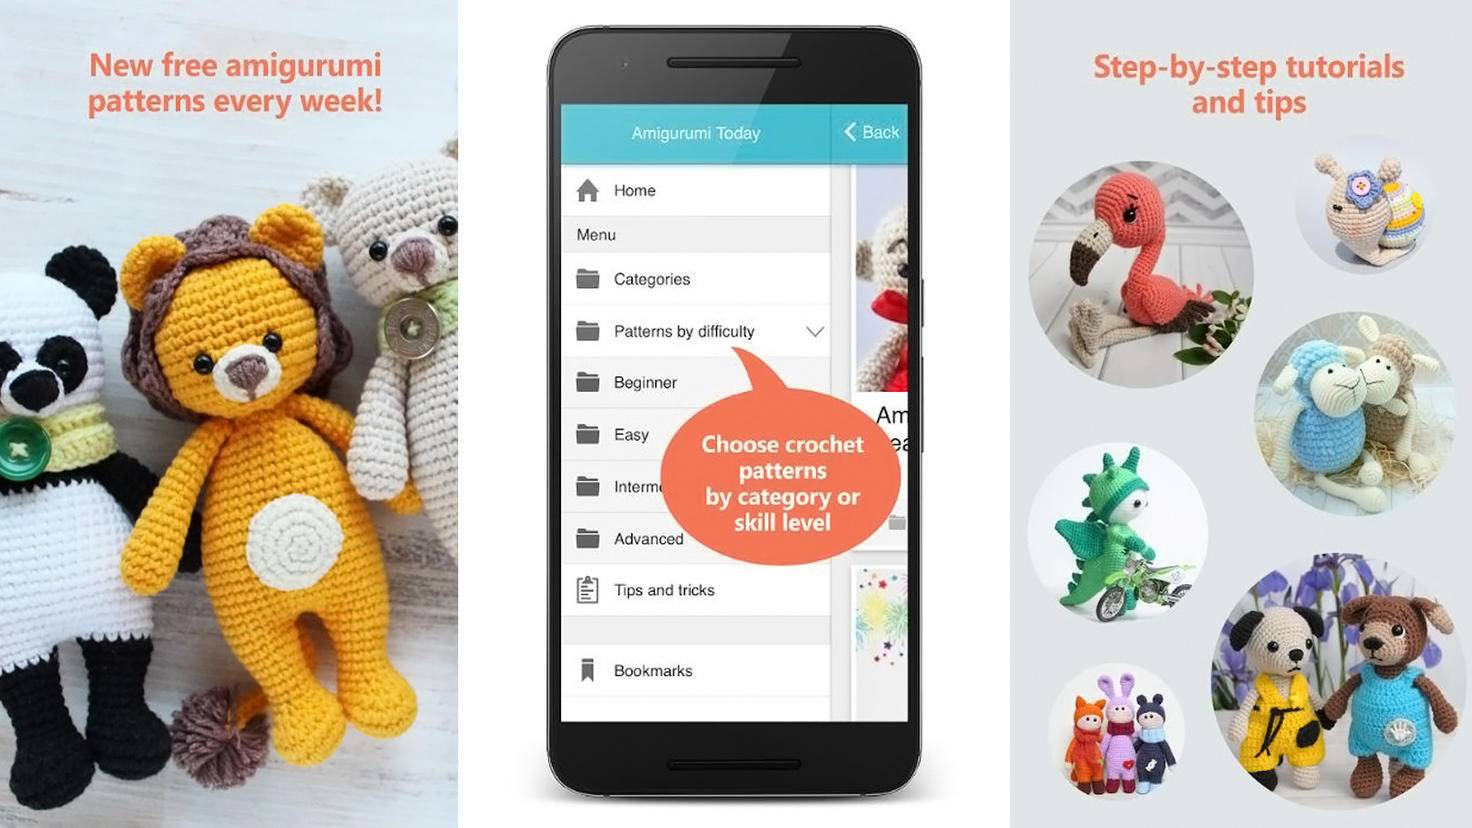 Amigurumi Today-Google Play Store-MimiCraft